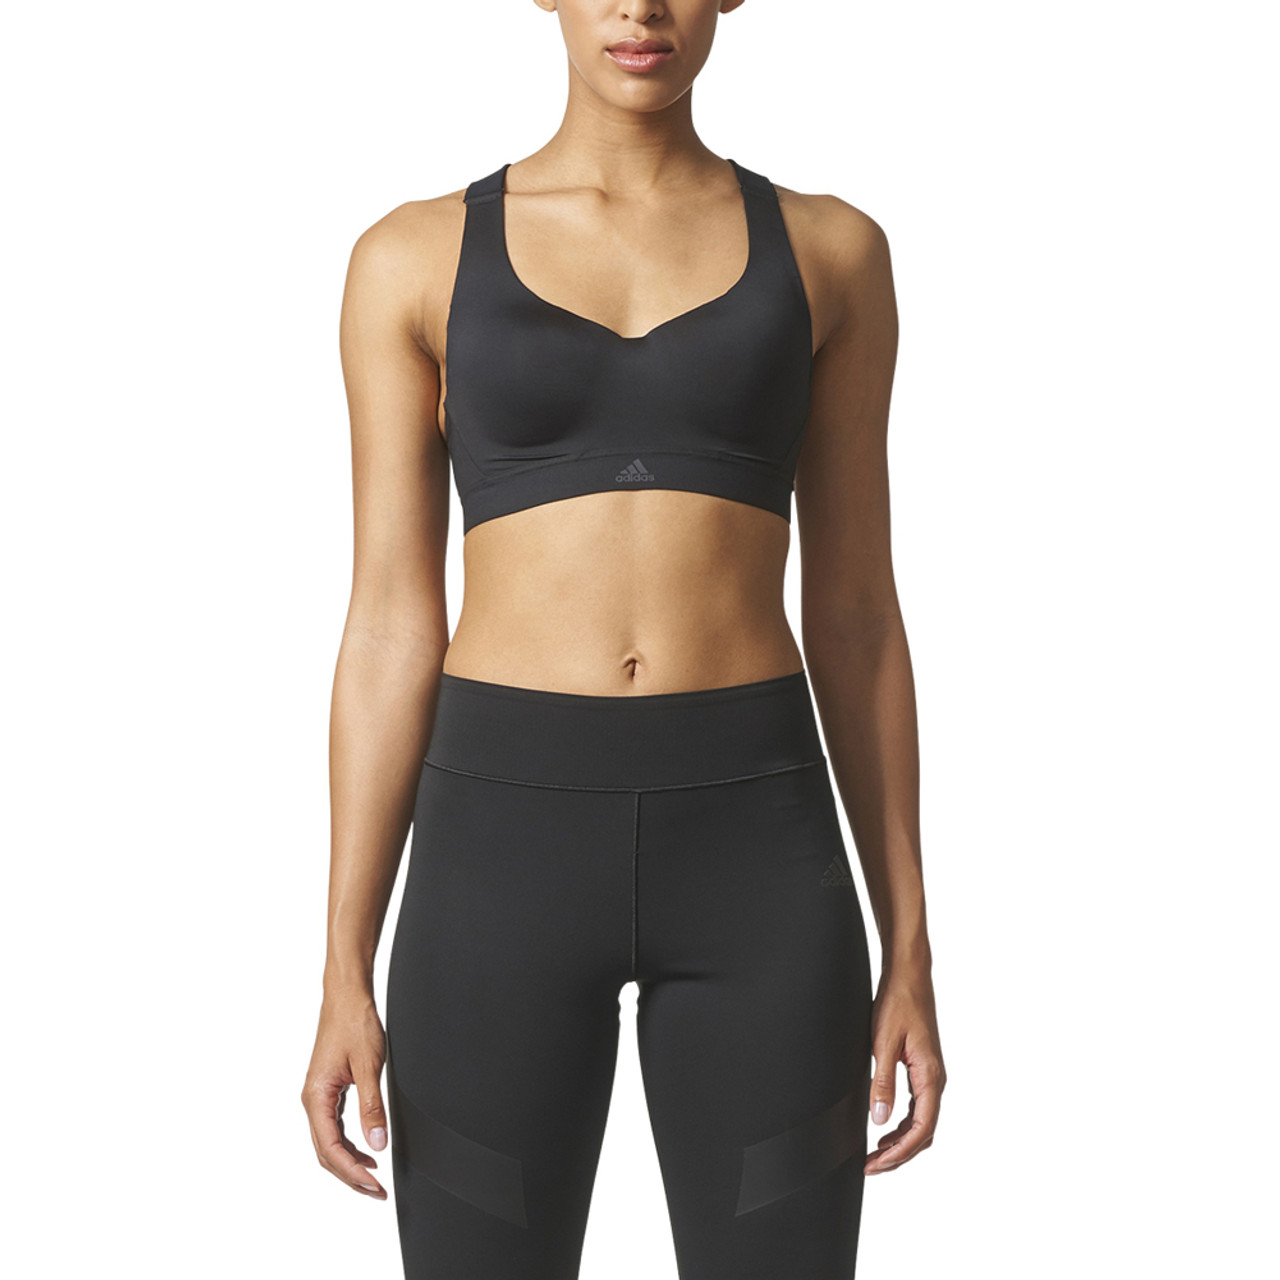 65ac498fae9 Adidas Women's Committed High Support Racerback Bra Black - Shop now @  Shoolu.com